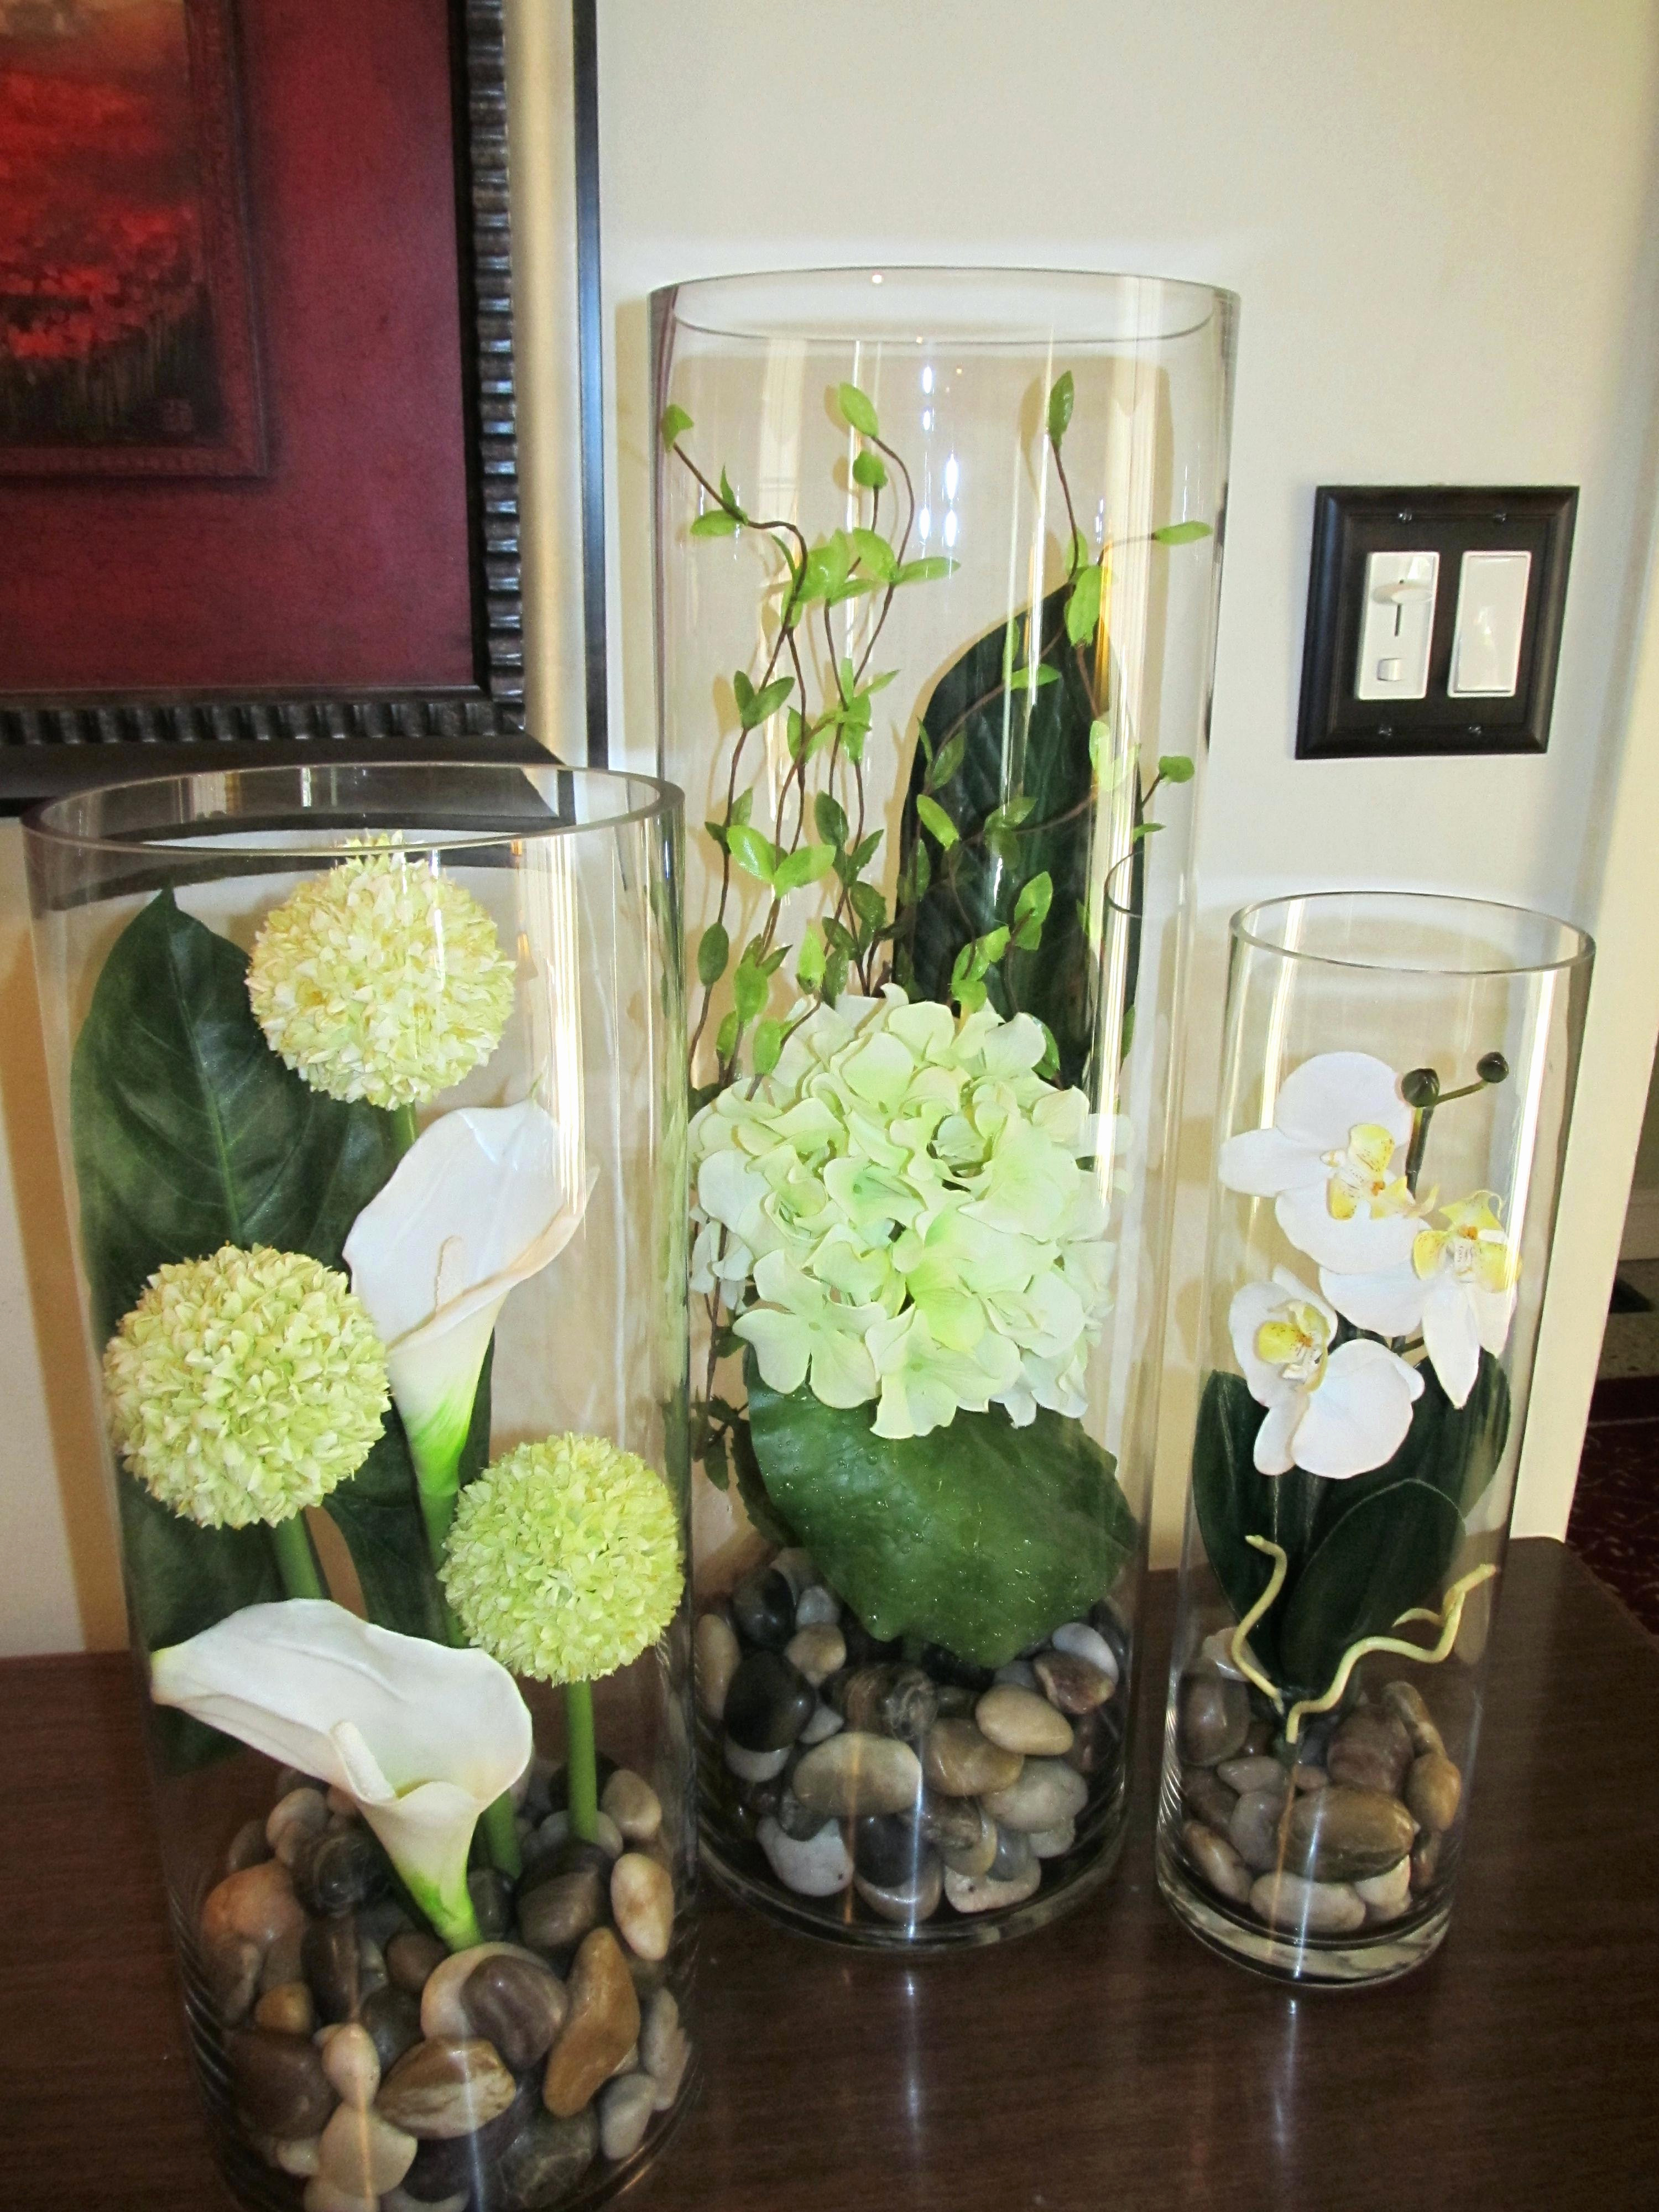 20 Trendy 12 Inch Clear Cylinder Vase | Decorative vase Ideas on plastic necklaces in bulk, handkerchiefs in bulk, chargers in bulk, bells in bulk, wine in bulk, mirrors in bulk, flasks in bulk, planters in bulk, seashells in bulk, games in bulk, toys in bulk, pearl beads in bulk, glass in bulk, bead necklaces in bulk, votives in bulk, hats in bulk, wholesale beads in bulk, stationery in bulk, pedestal bowls in bulk, craft beads in bulk,